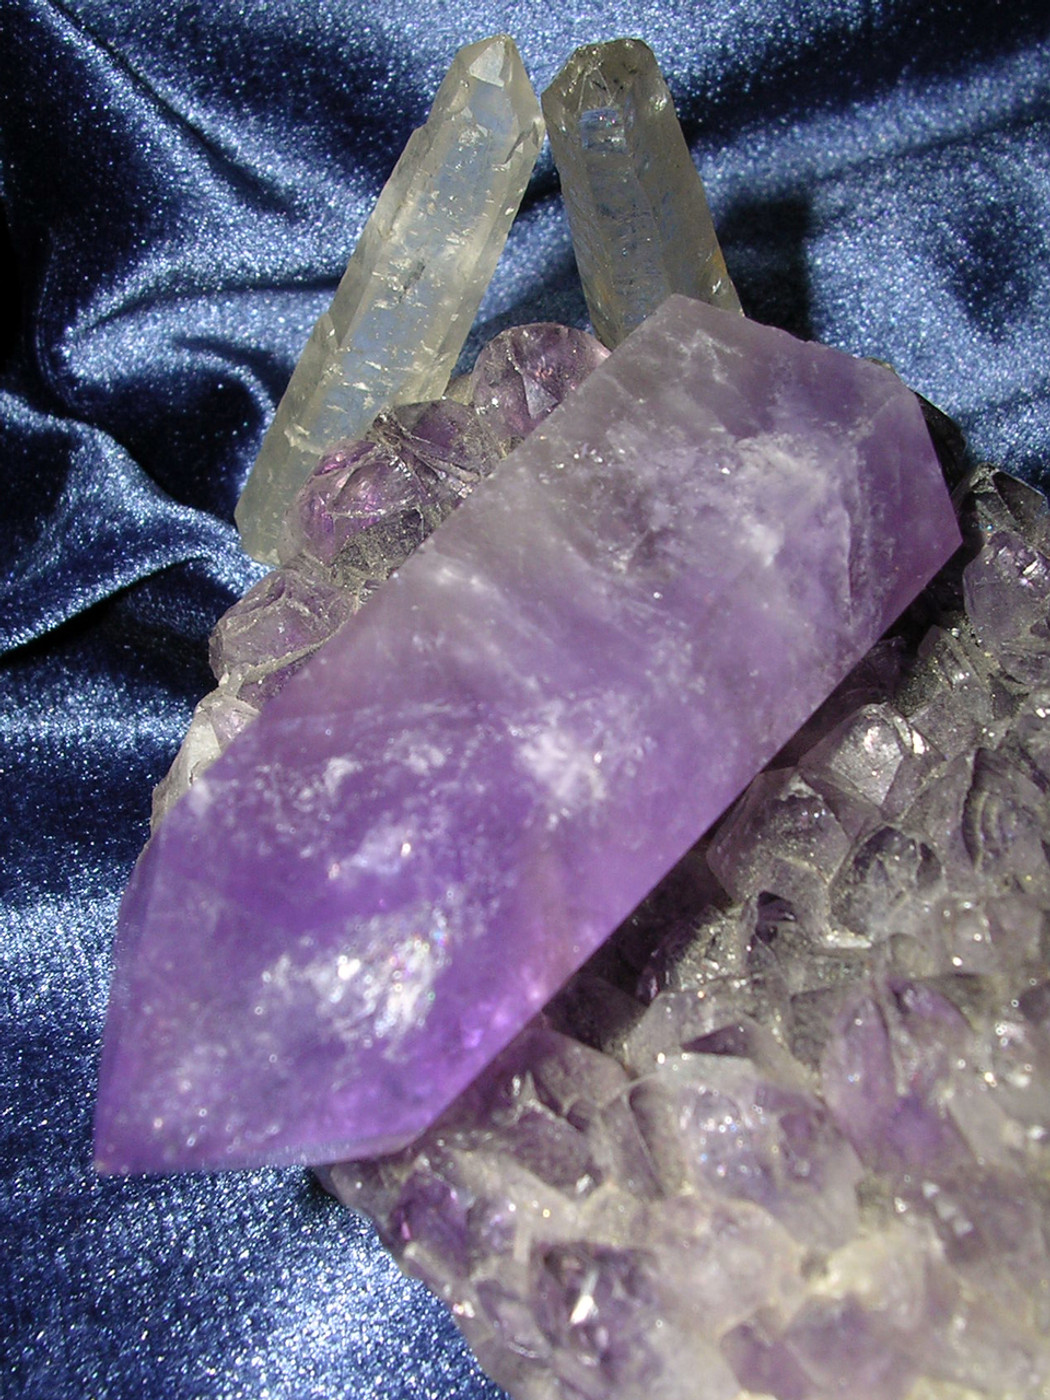 Enchanted Amethyst Crystal ✦ See Into The Future! Psychic Abilities